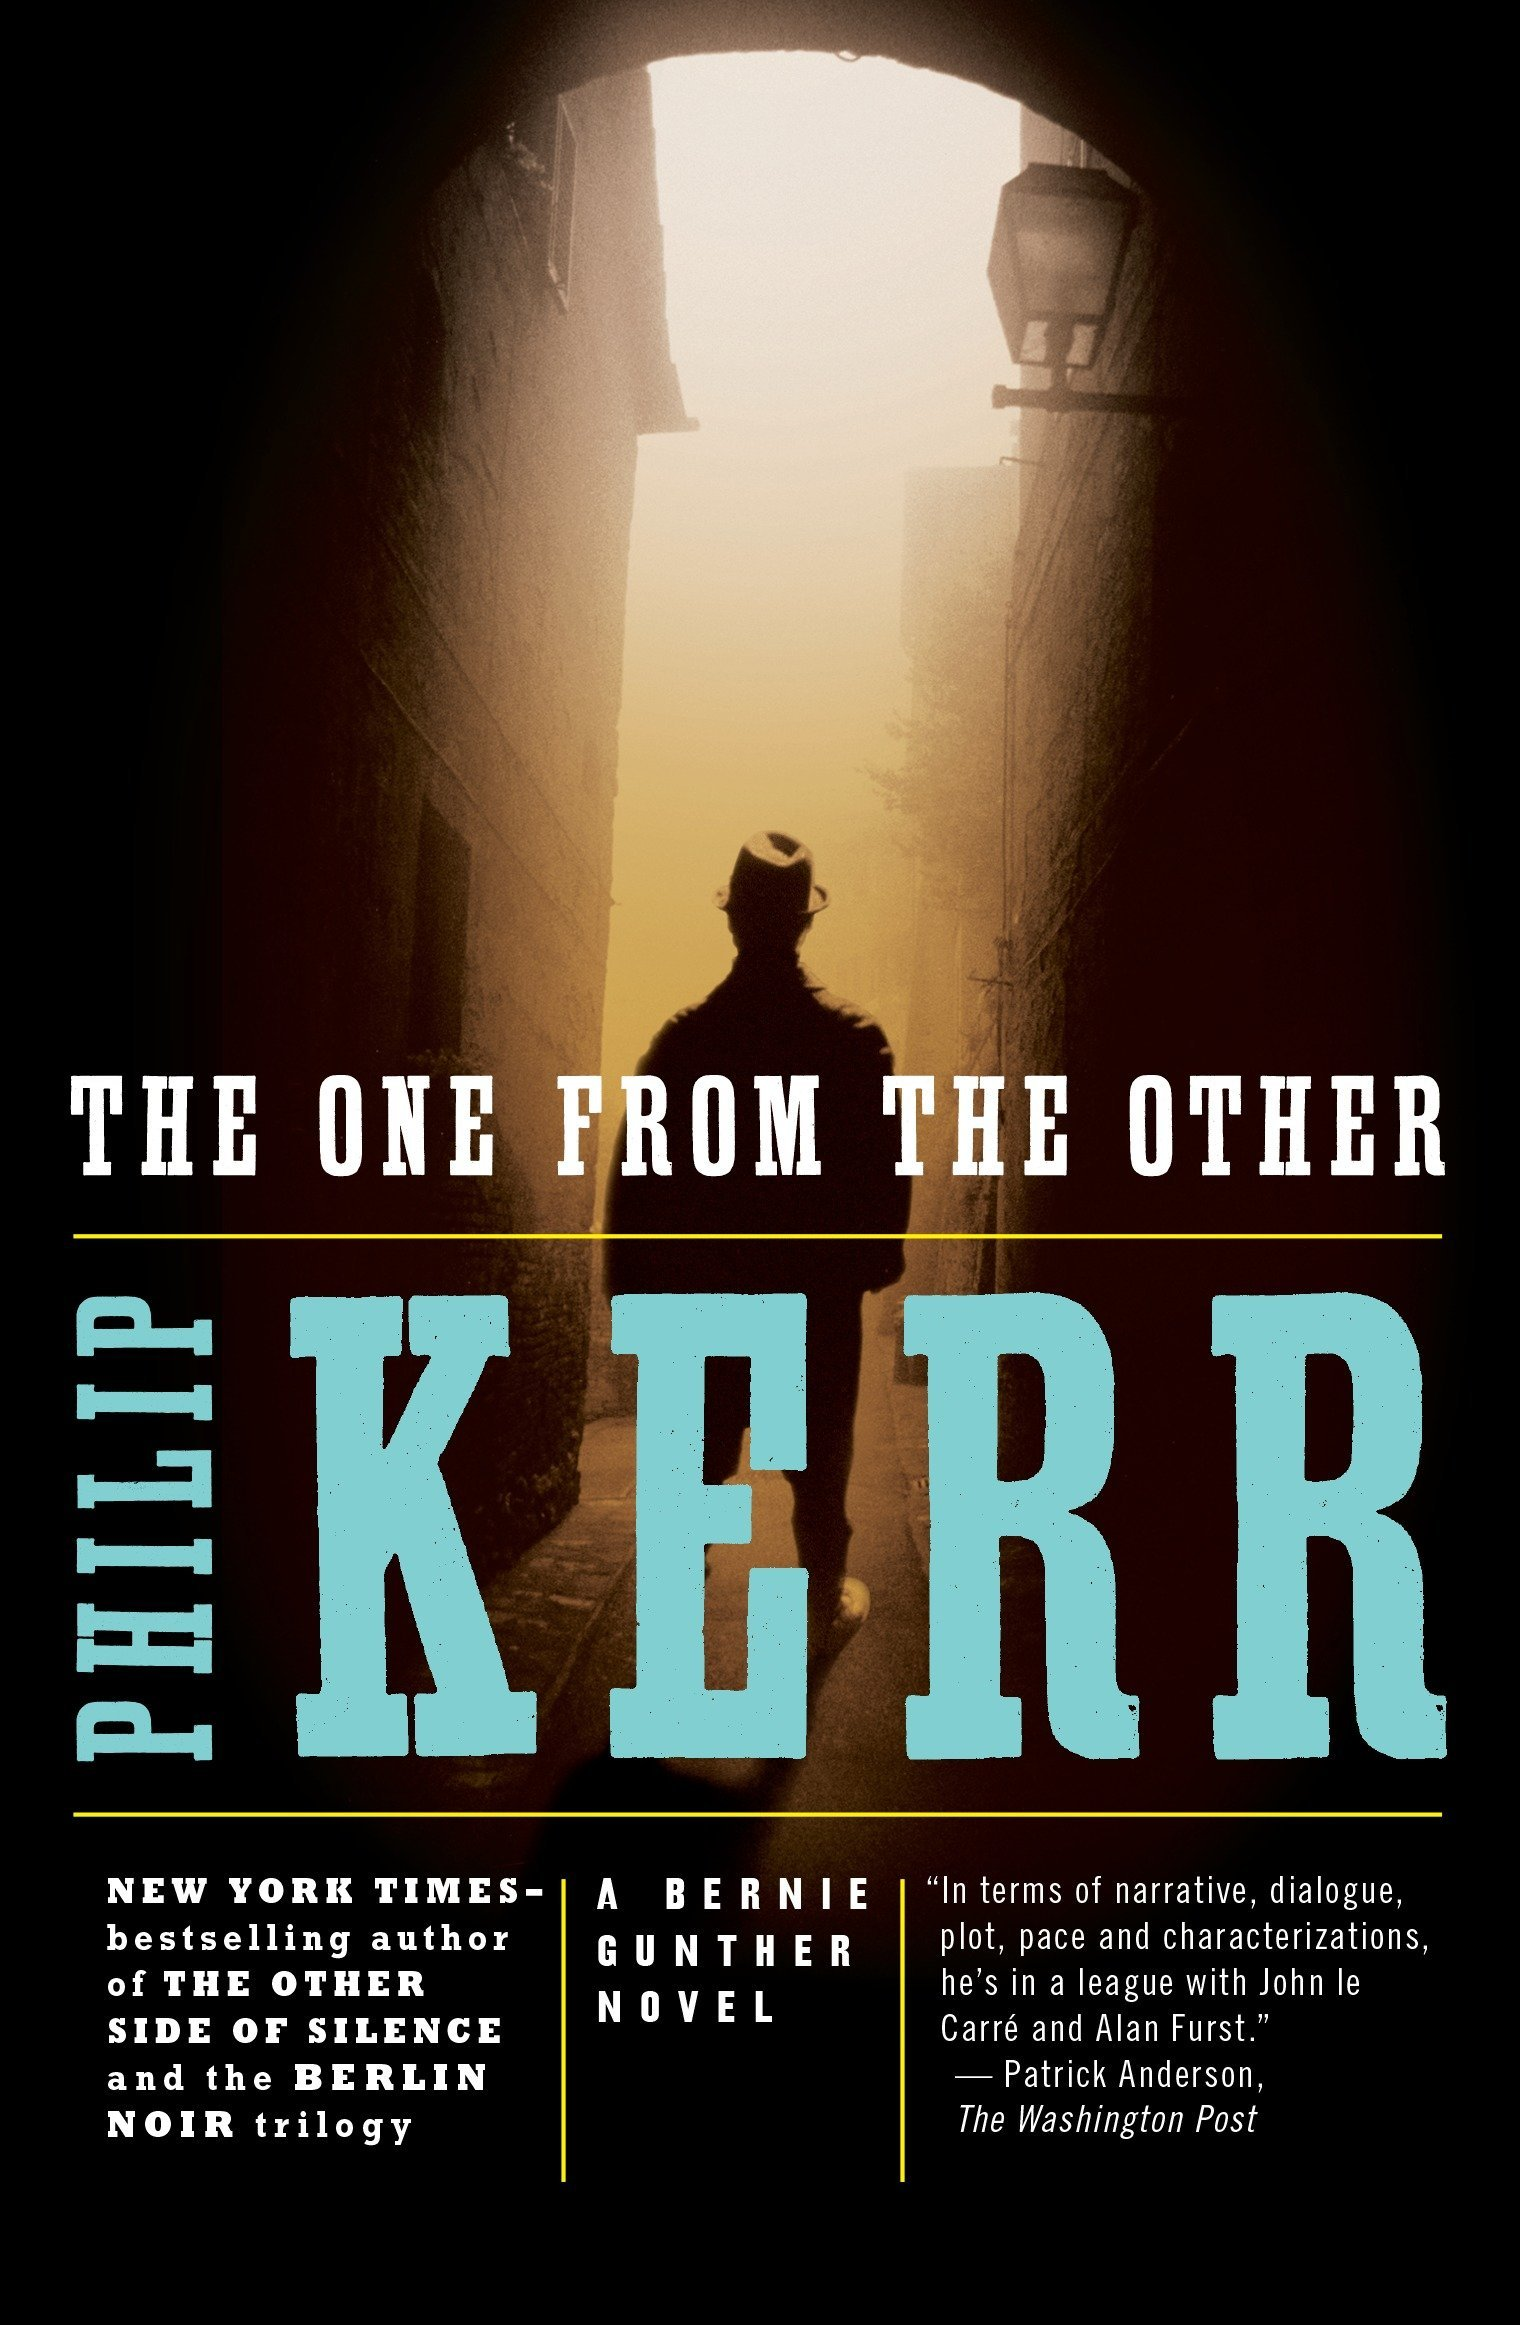 Read Online The One from the Other: A Bernie Gunther Novel PDF